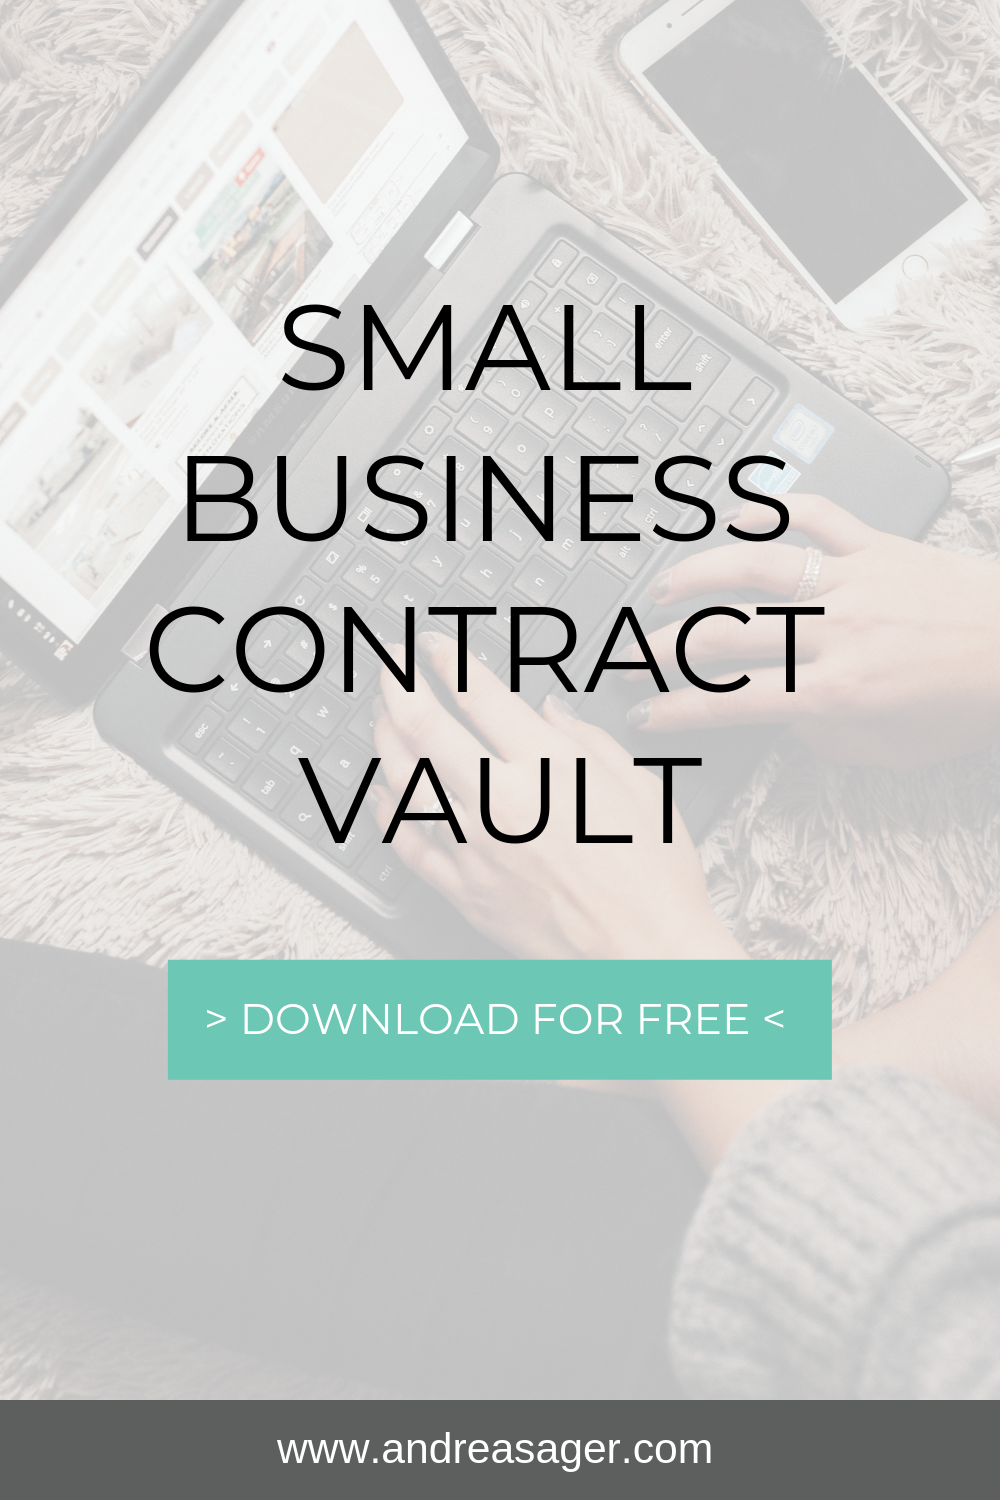 Small business contract vault - download the following for free